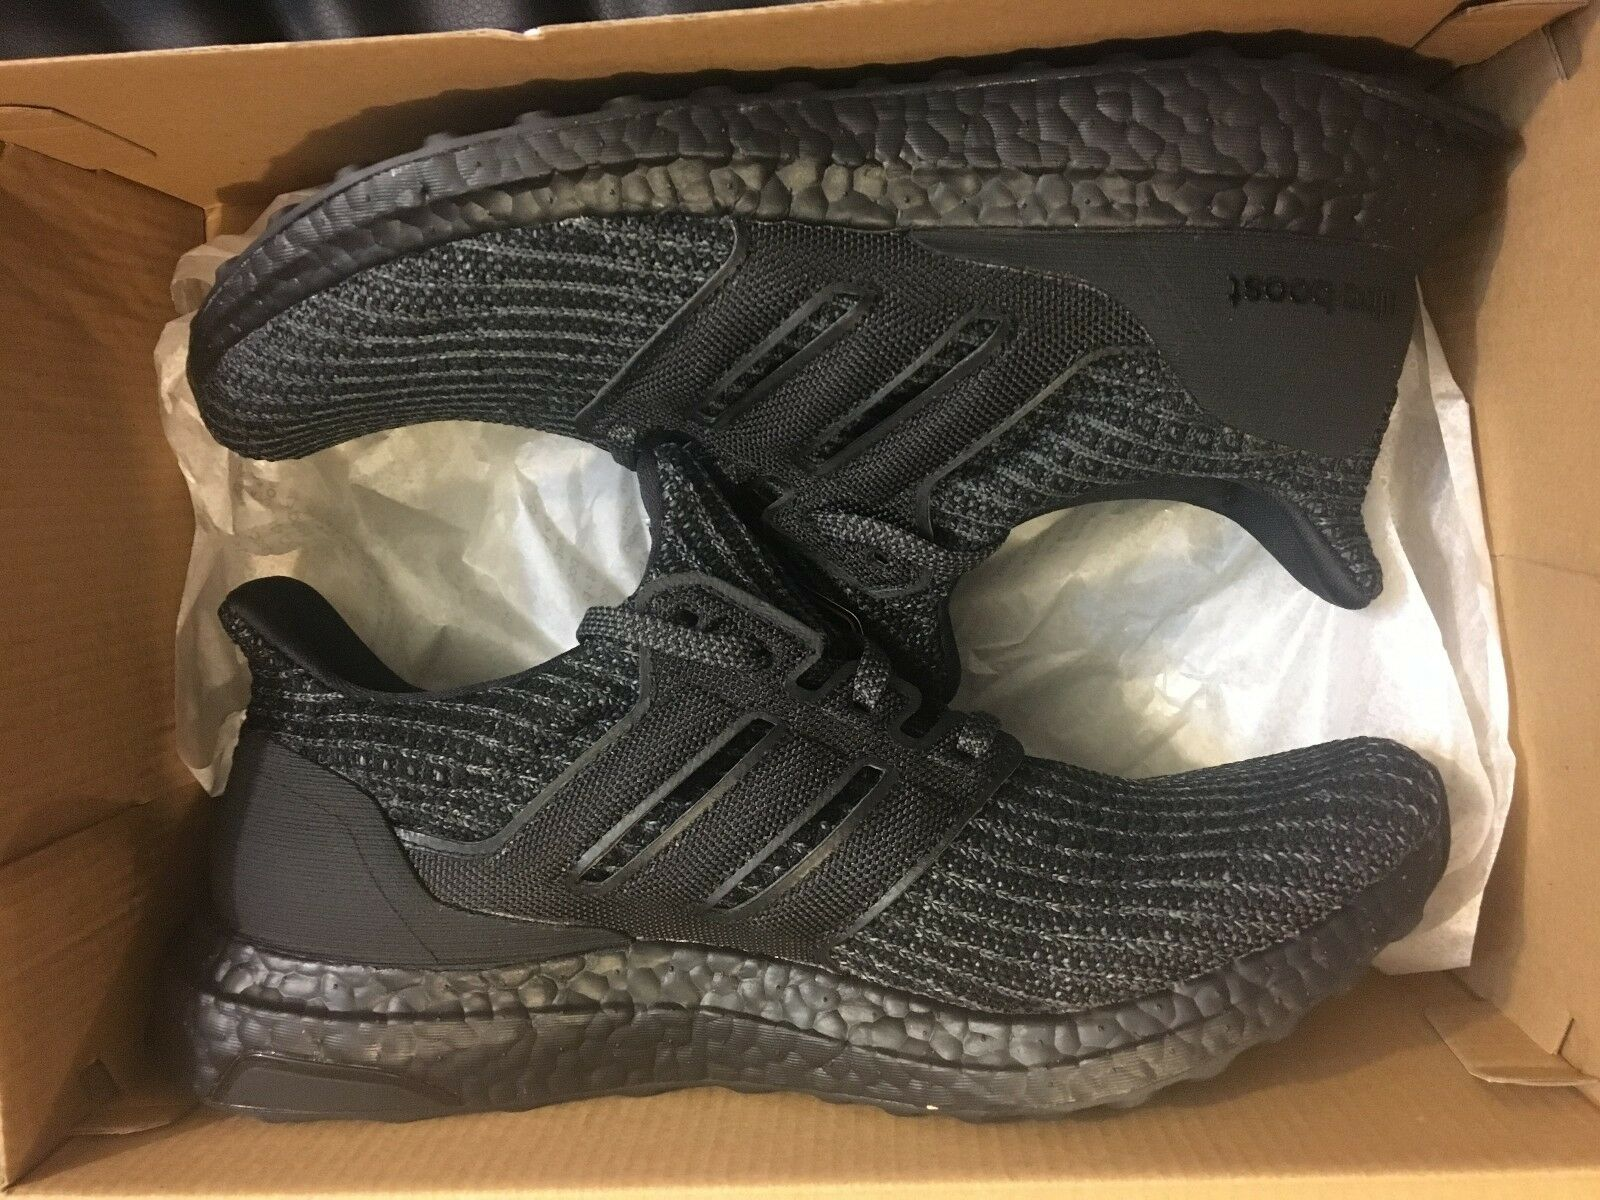 NEW ADIDAS ULTRA BOOST 4.0 TRIPLE BLK ULTRABOOST RUNNING SHOE BB6171 MEN Price reduction